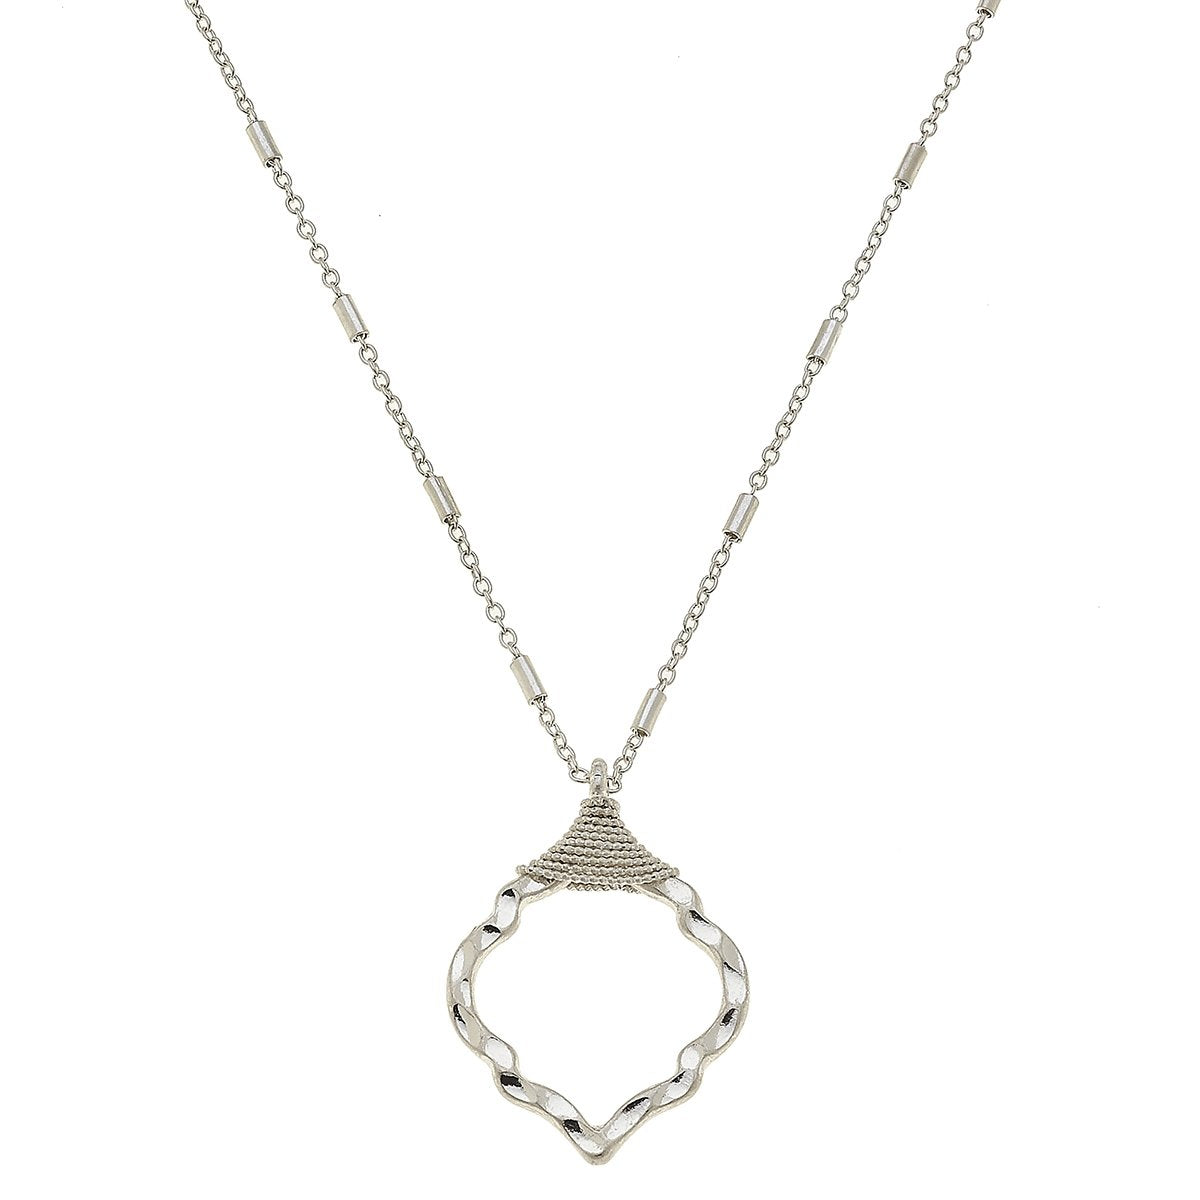 Chain-Wrapped Quatrefoil Necklace in Worn Silver